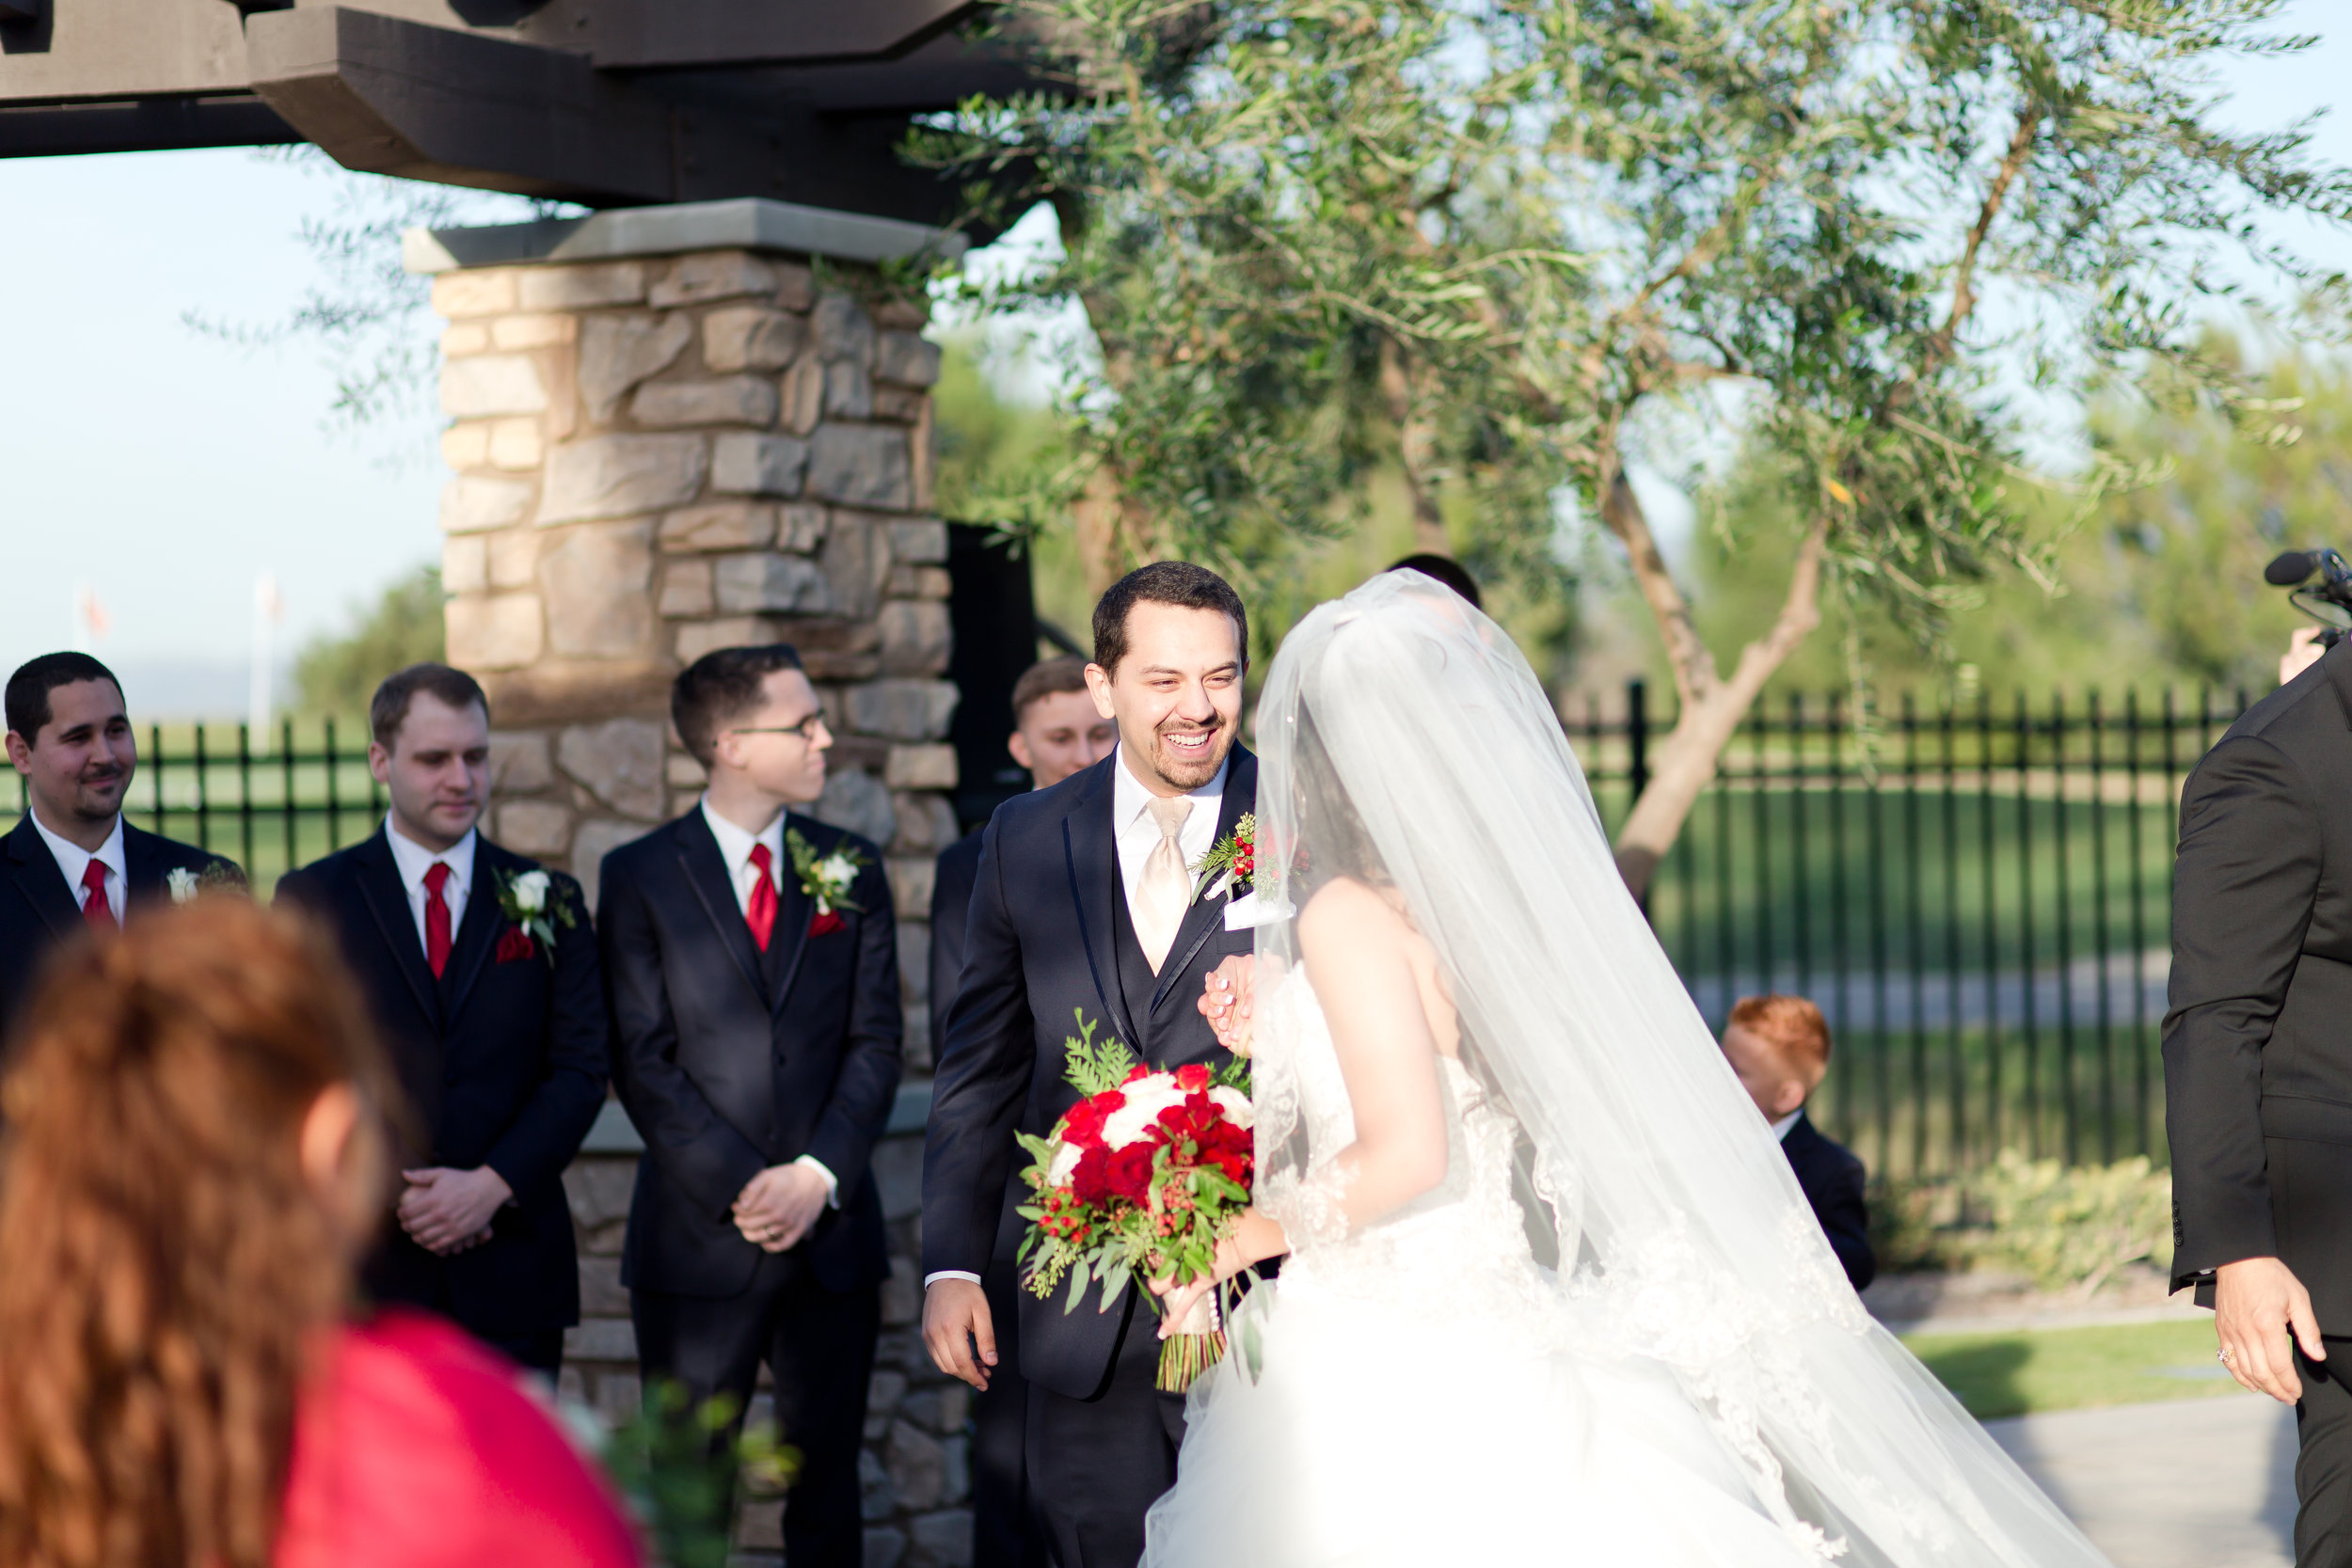 MarbleWedding_Ceremony_JLP-81.jpg